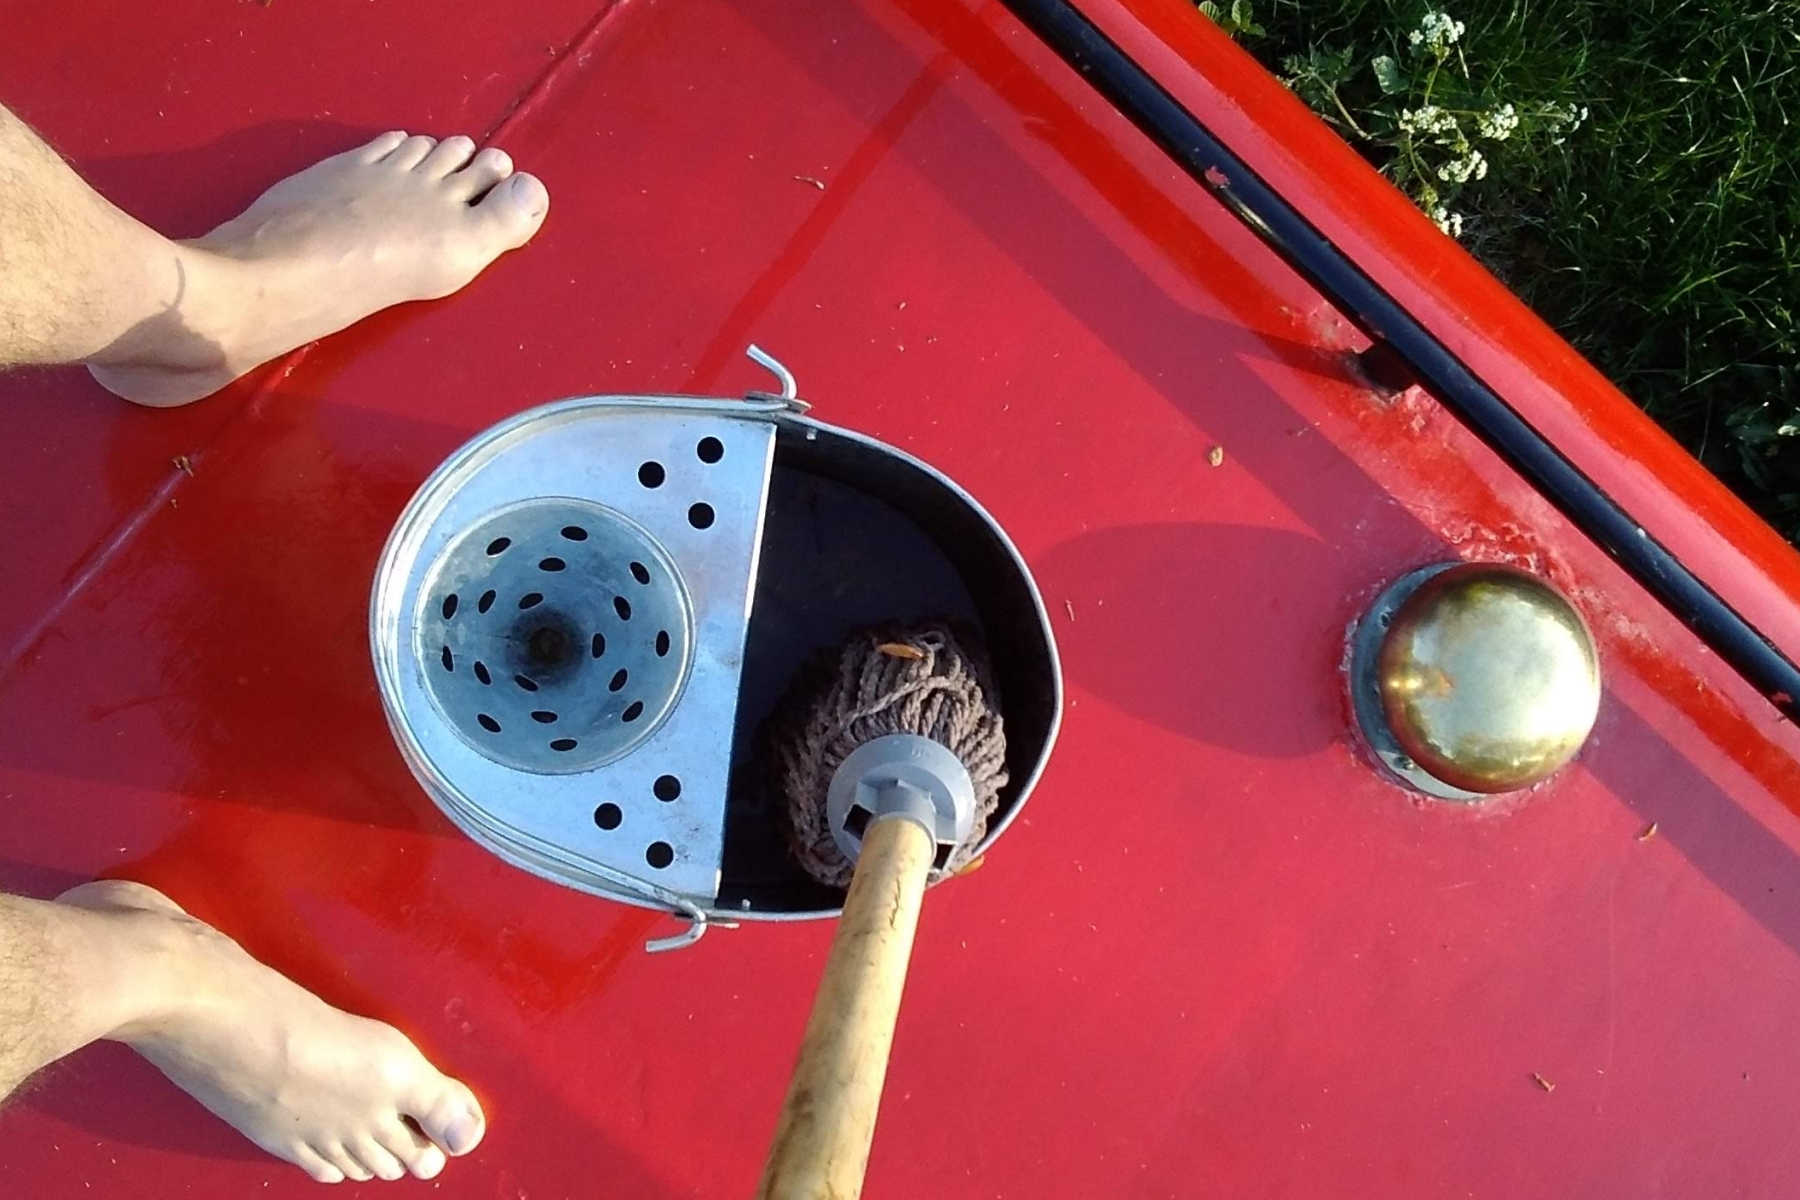 Mop bucket on boat